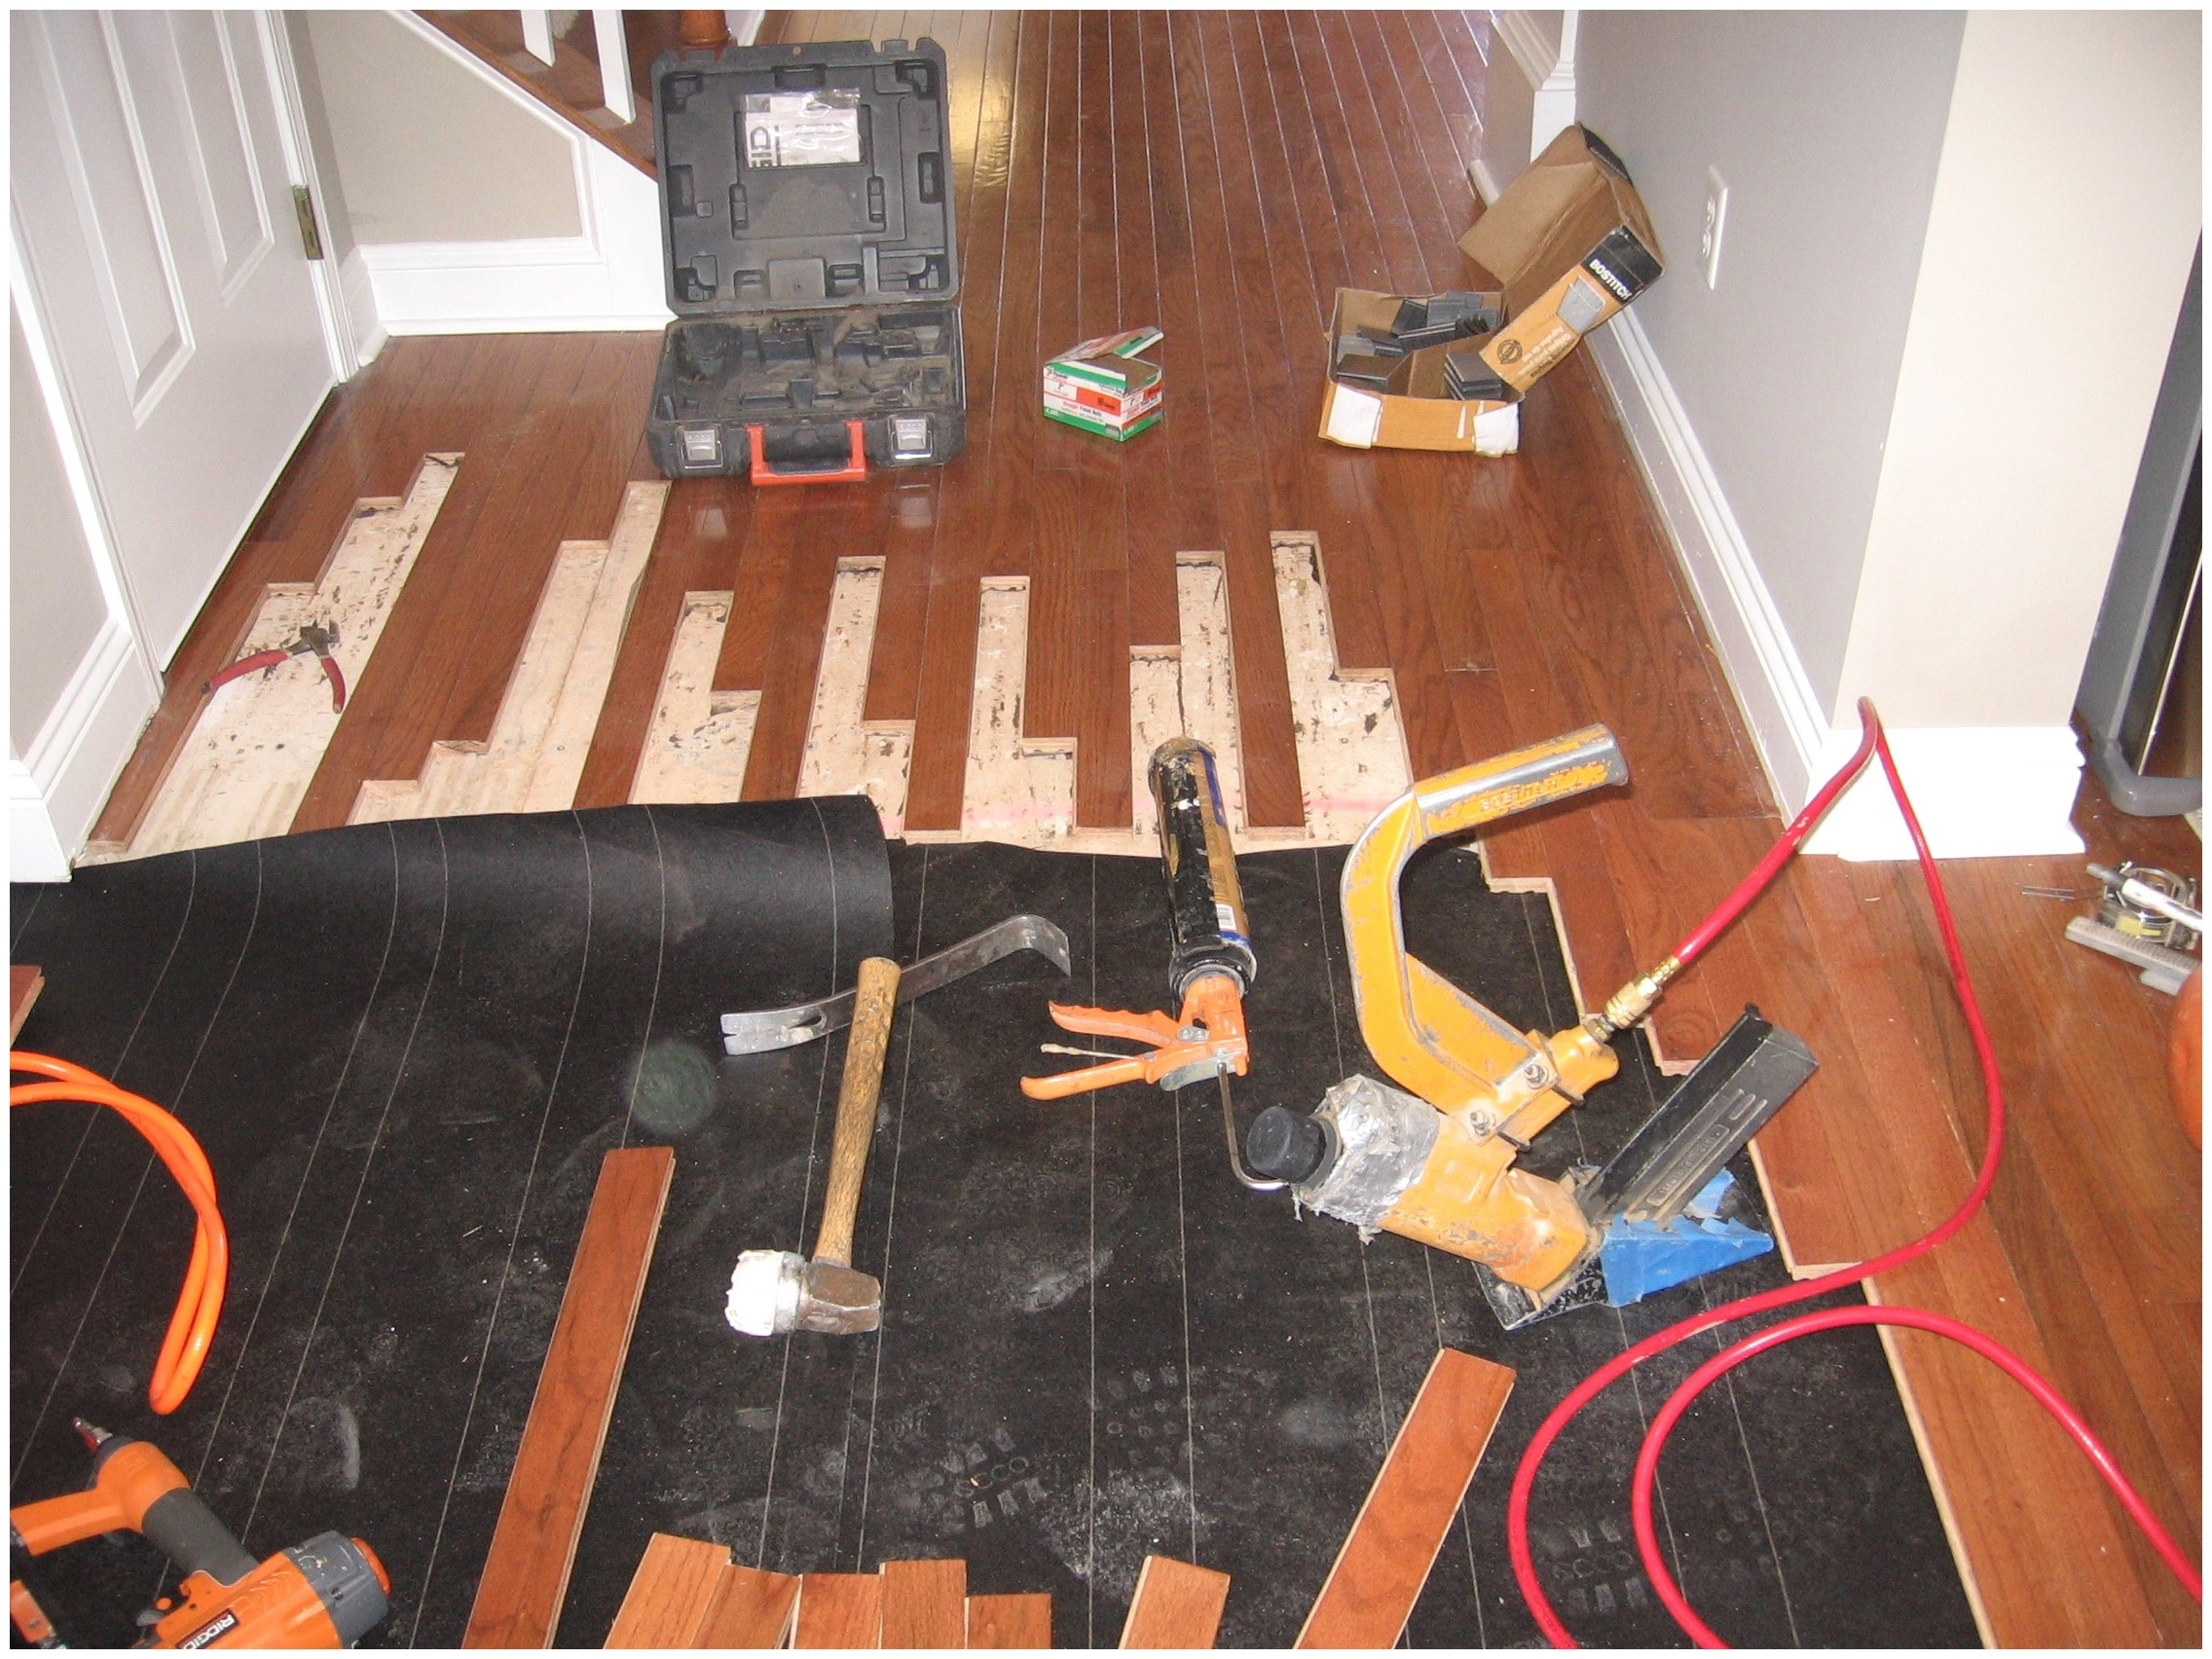 installing glue down hardwood floors of best way to install engineered wood flooring over concrete how to regarding best way to install engineered wood flooring over concrete hardwood floor installation cost to install engineered